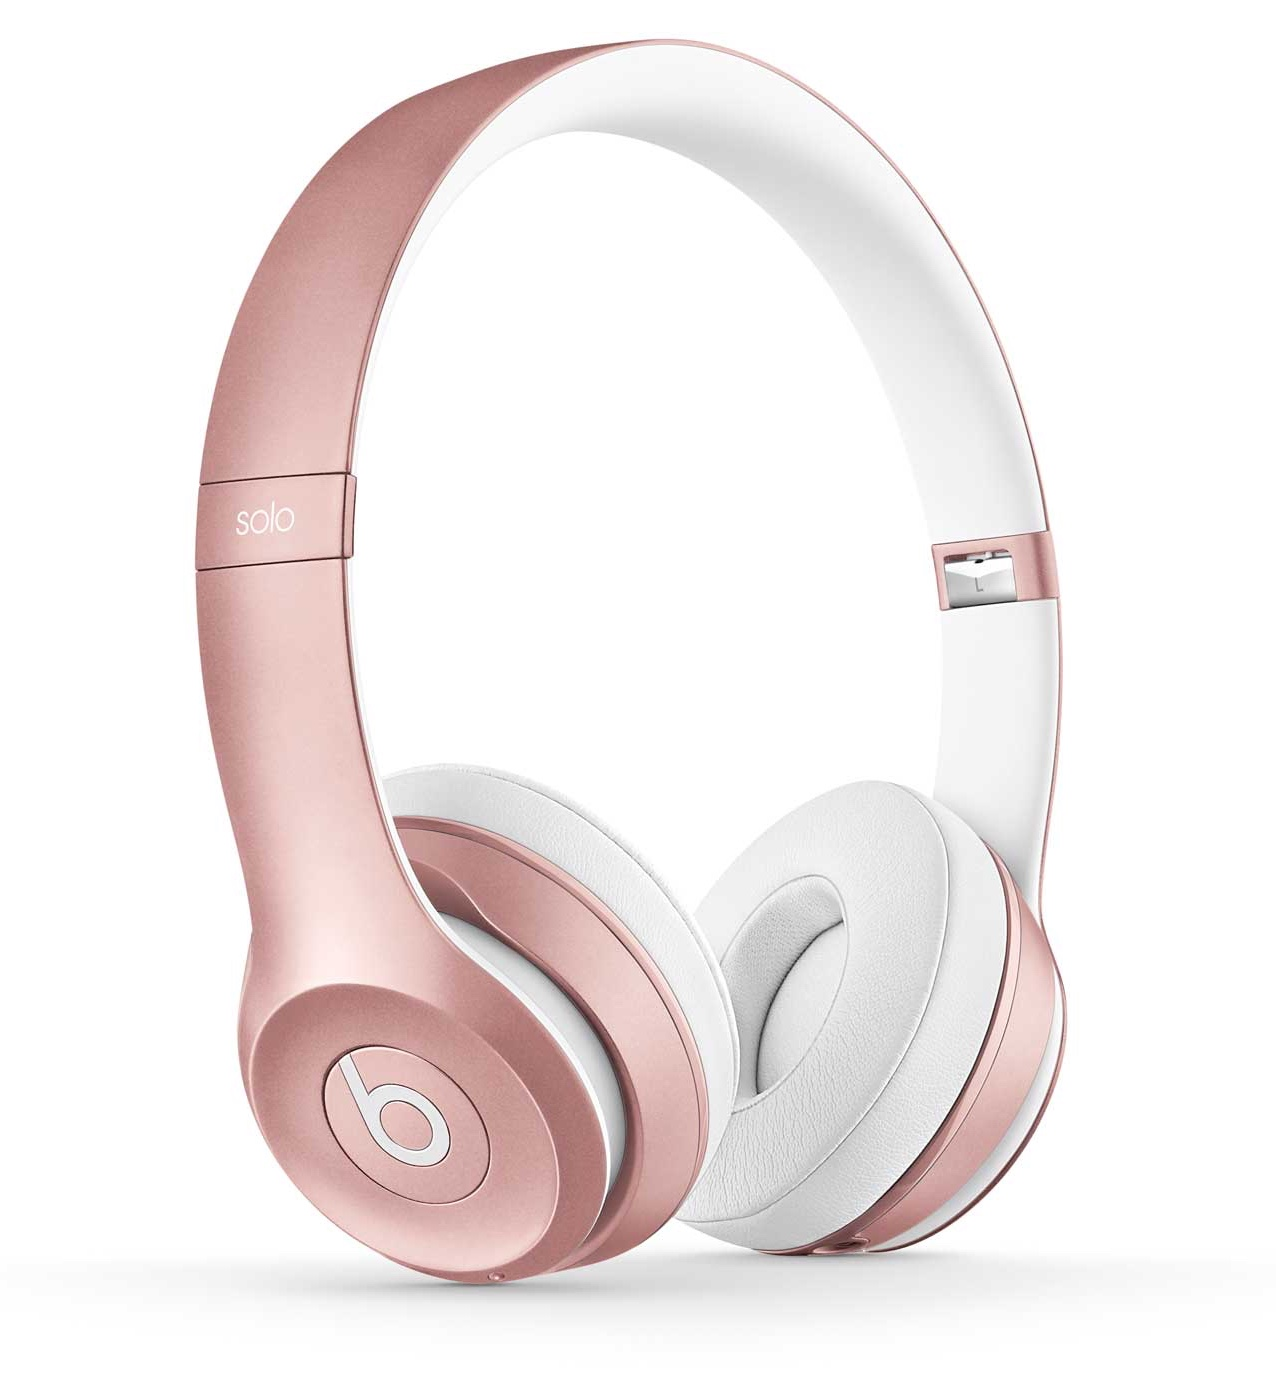 beats solo2 wireless headphones now available in rose gold image gallery. Black Bedroom Furniture Sets. Home Design Ideas